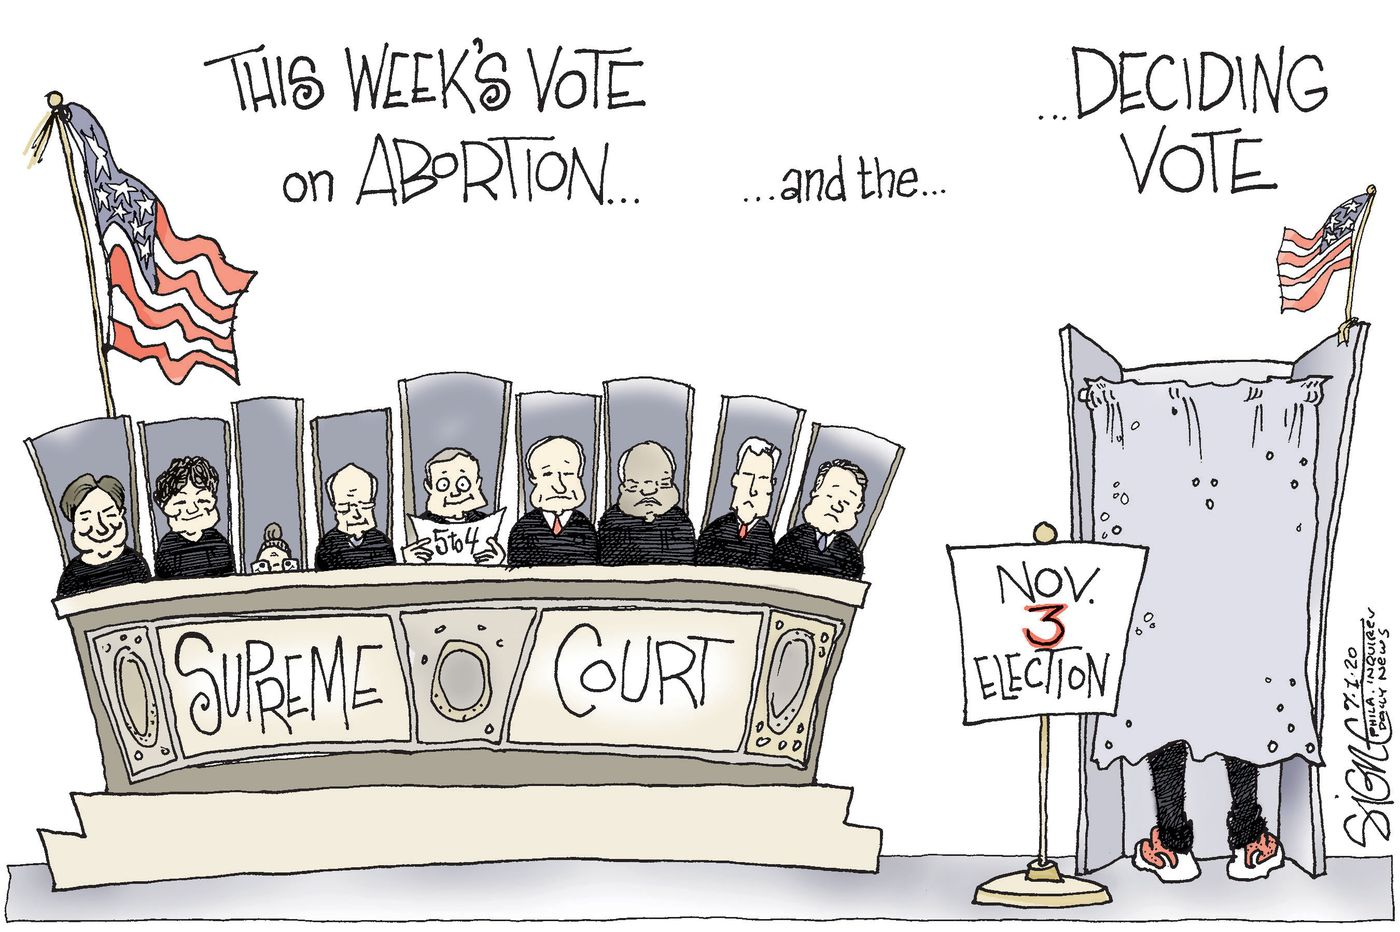 Political Cartoon: Counting the votes for abortion rights